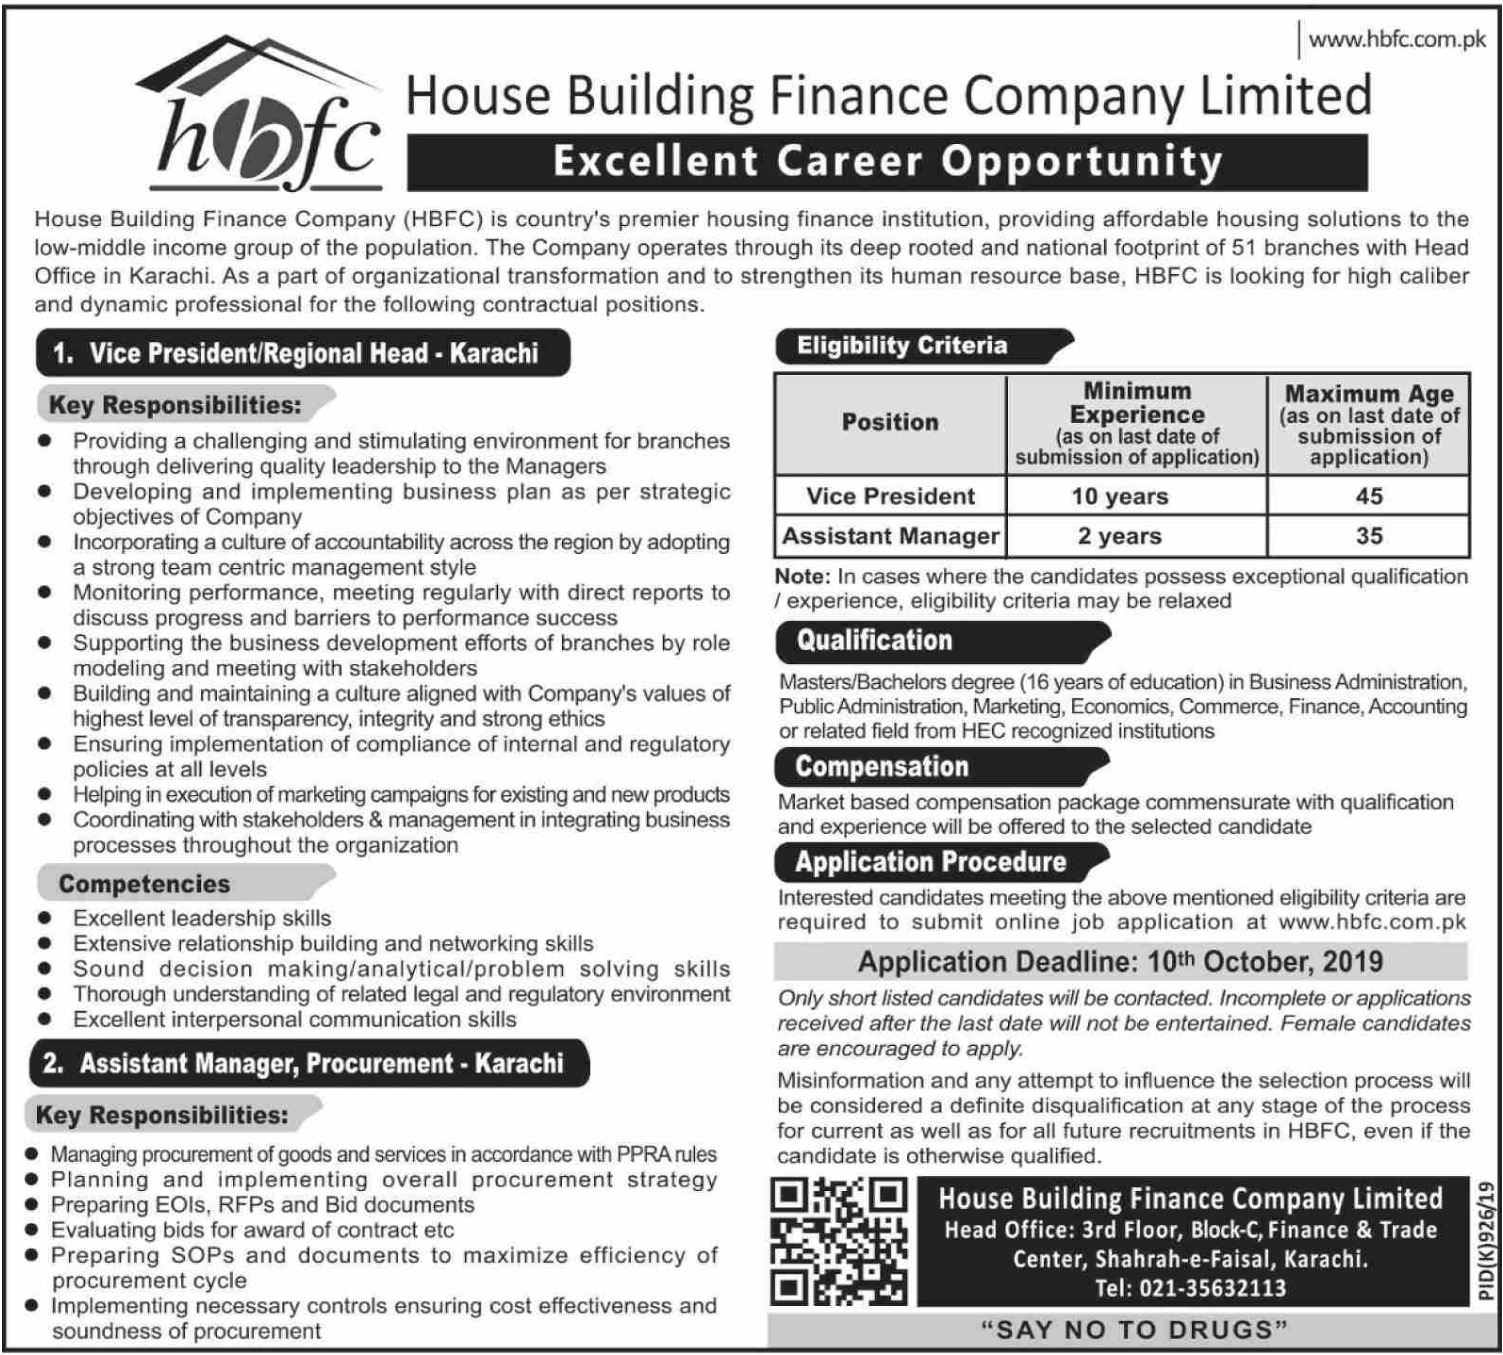 HBFC Jobs 2019 House Building Finance Company Ltd